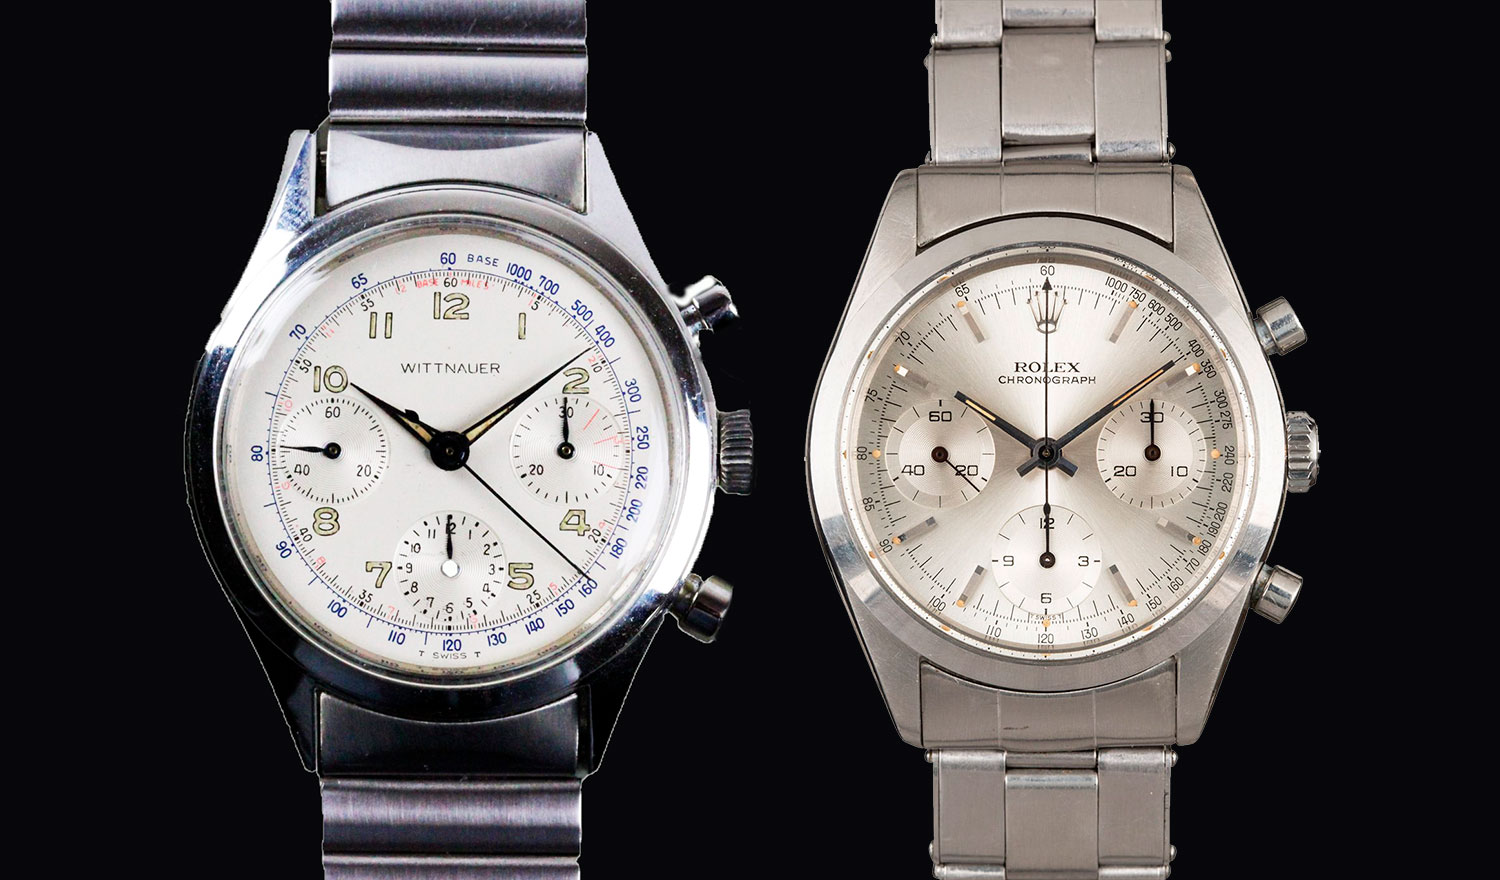 Longines Wittnauer 235T y Rolex Cosmograph 6238